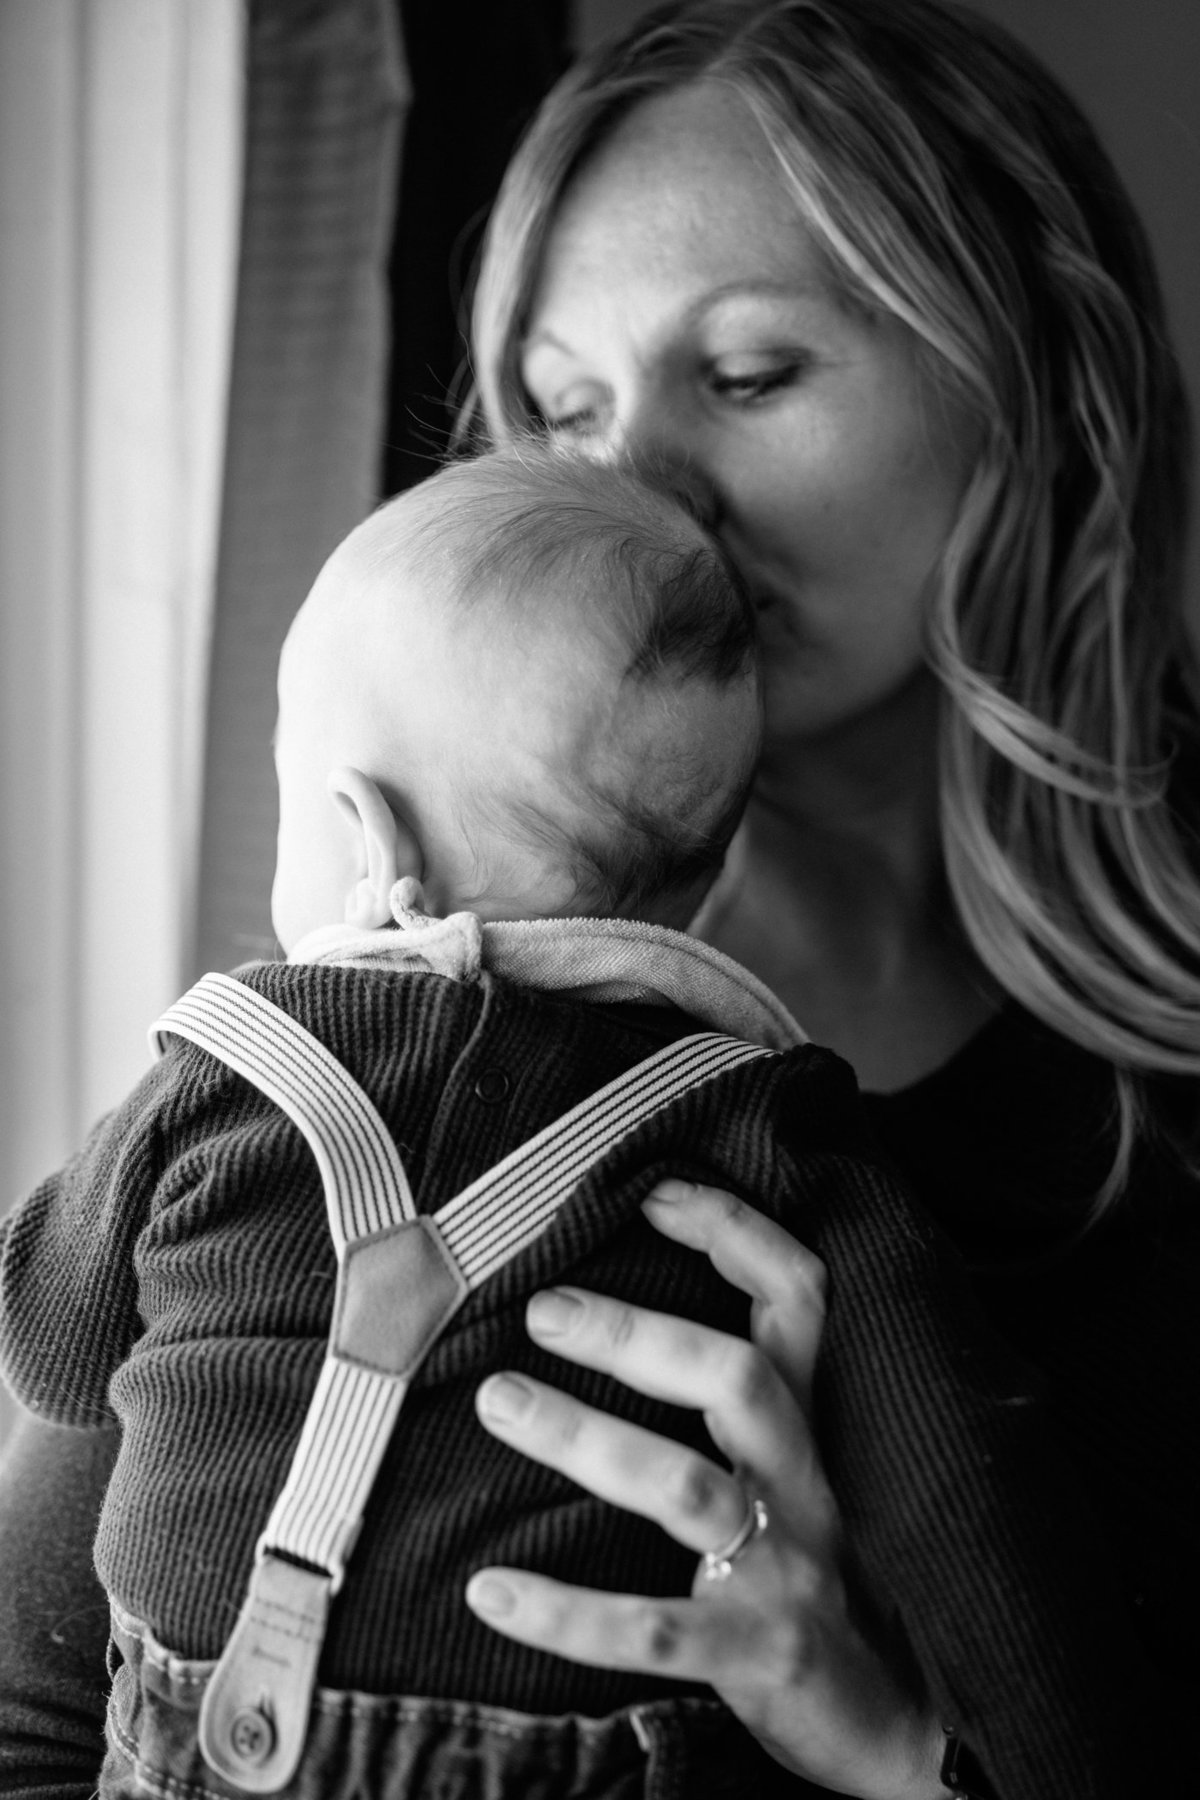 Mom kissing baby head by window during lifestyle newborn session in Hamilton.